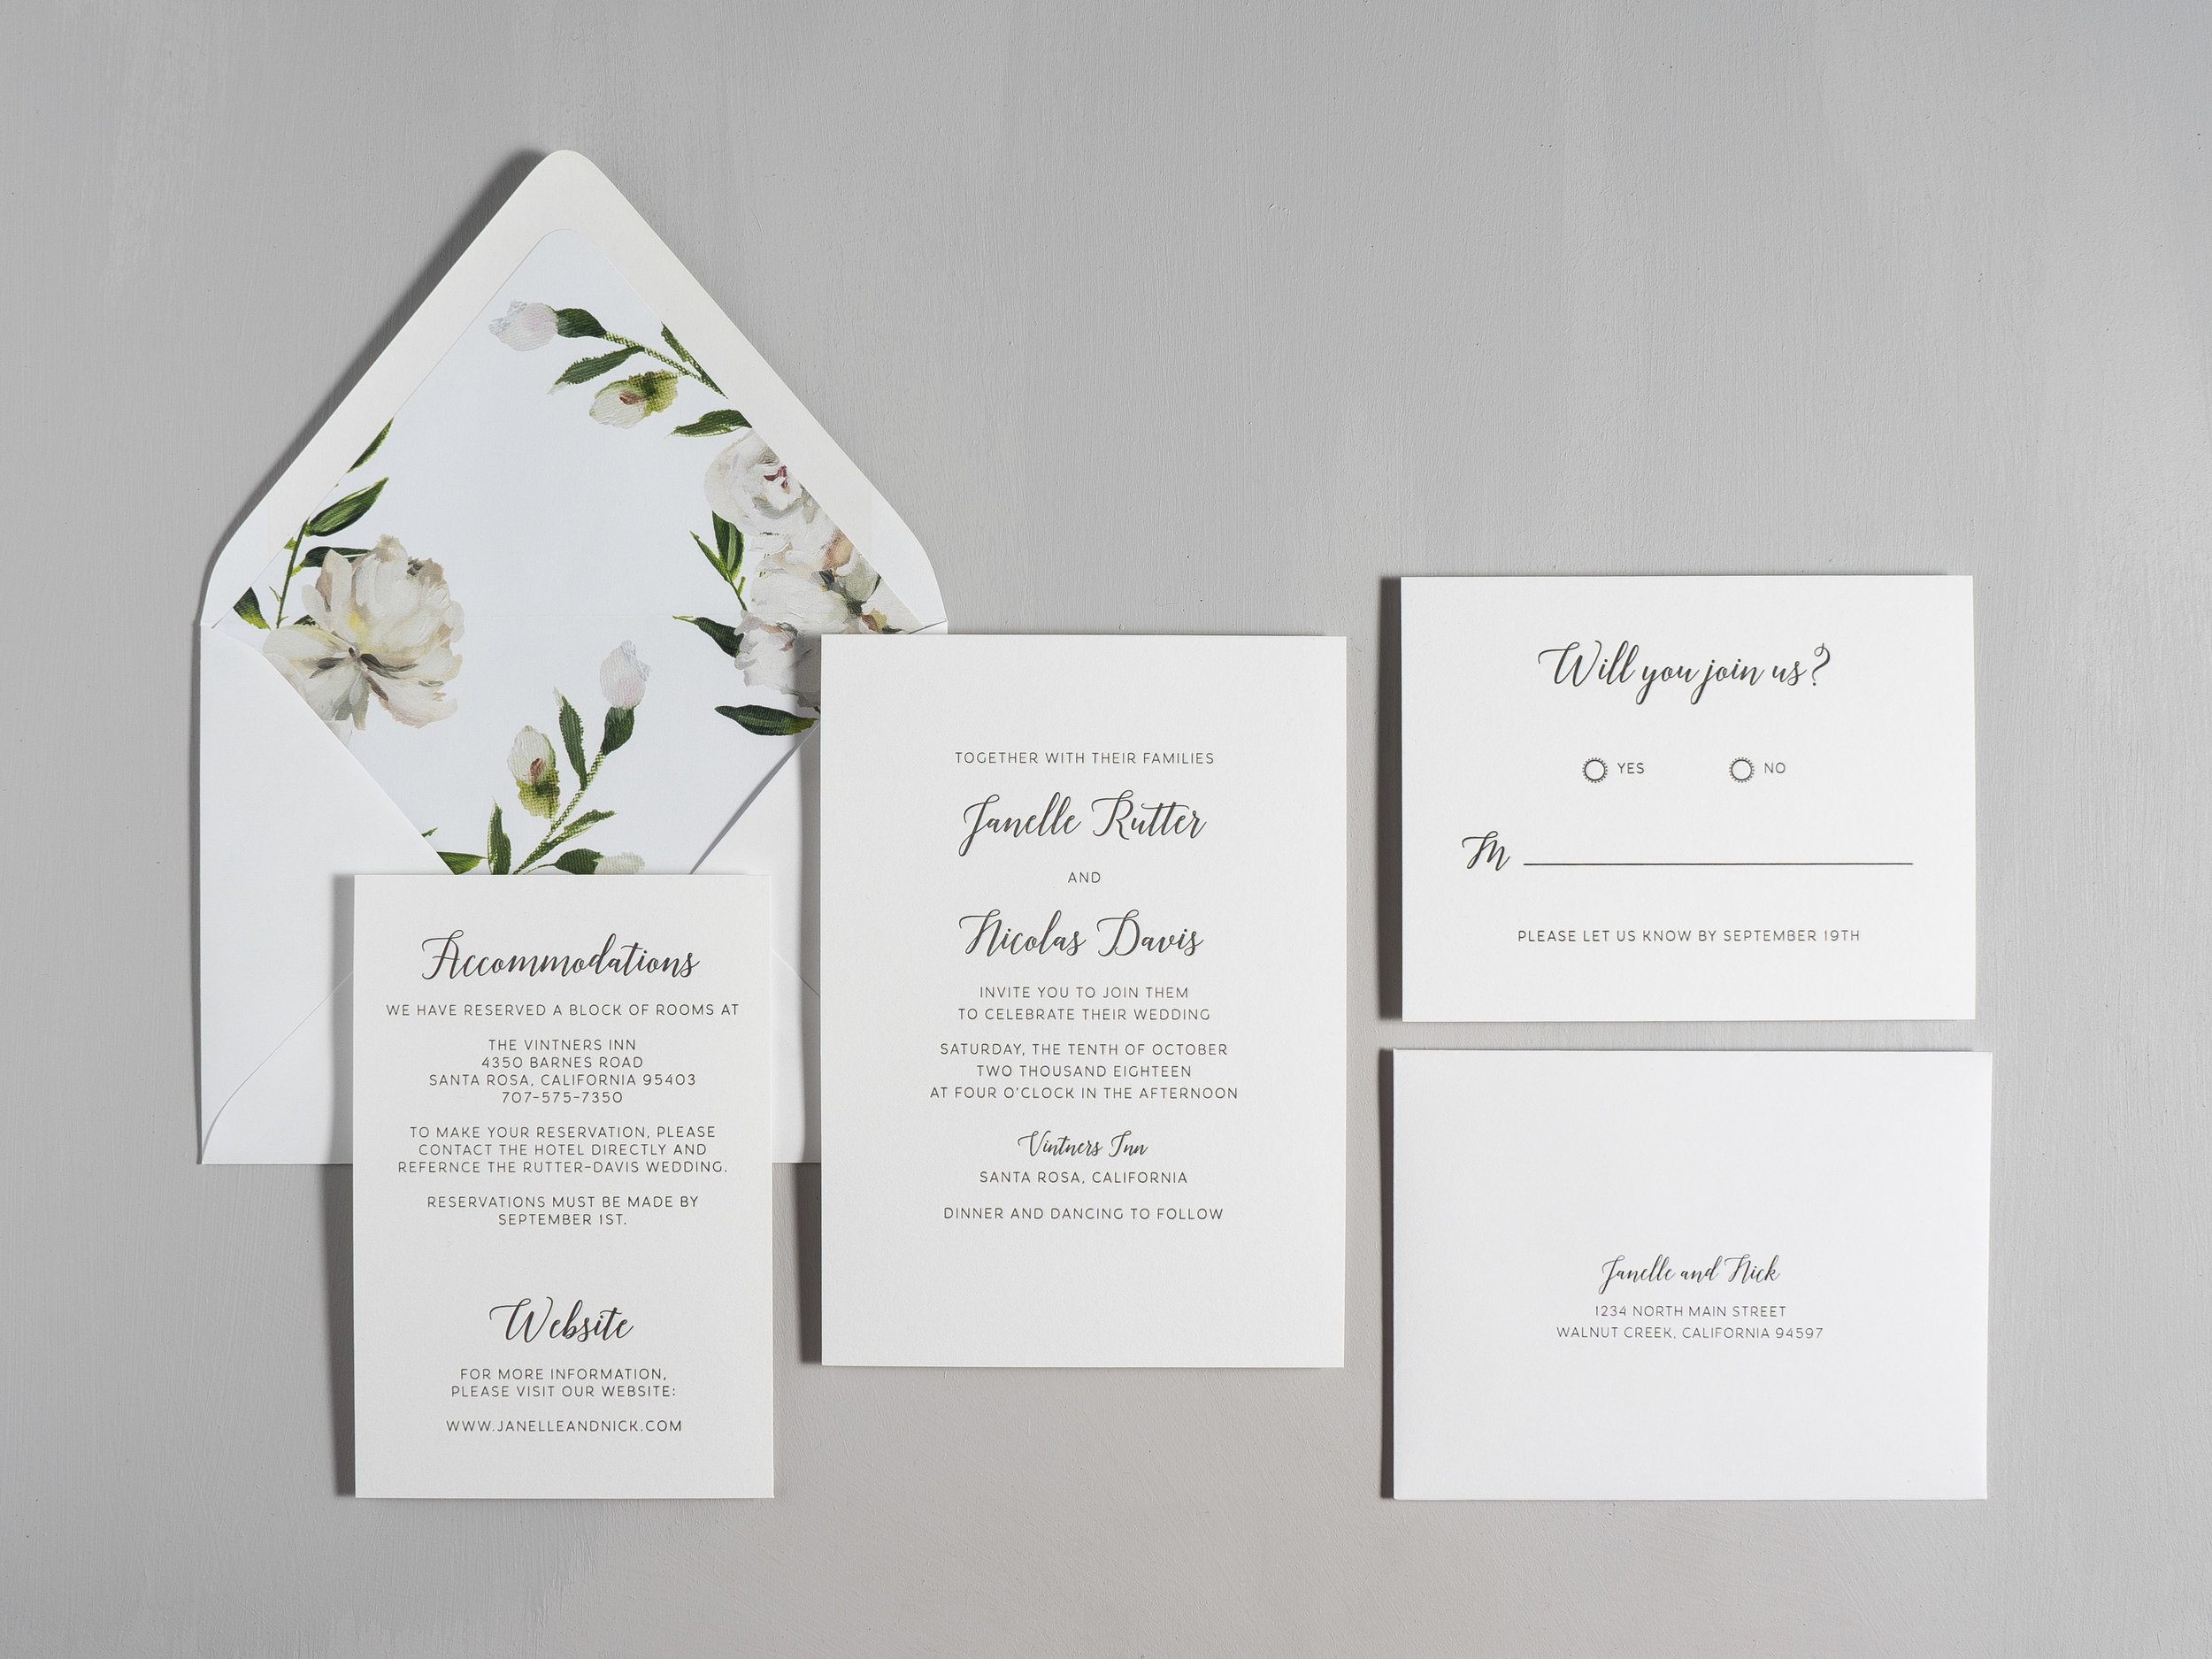 Simple Script V2 Letterpress Wedding Invitations by Just Jurf-1.jpg